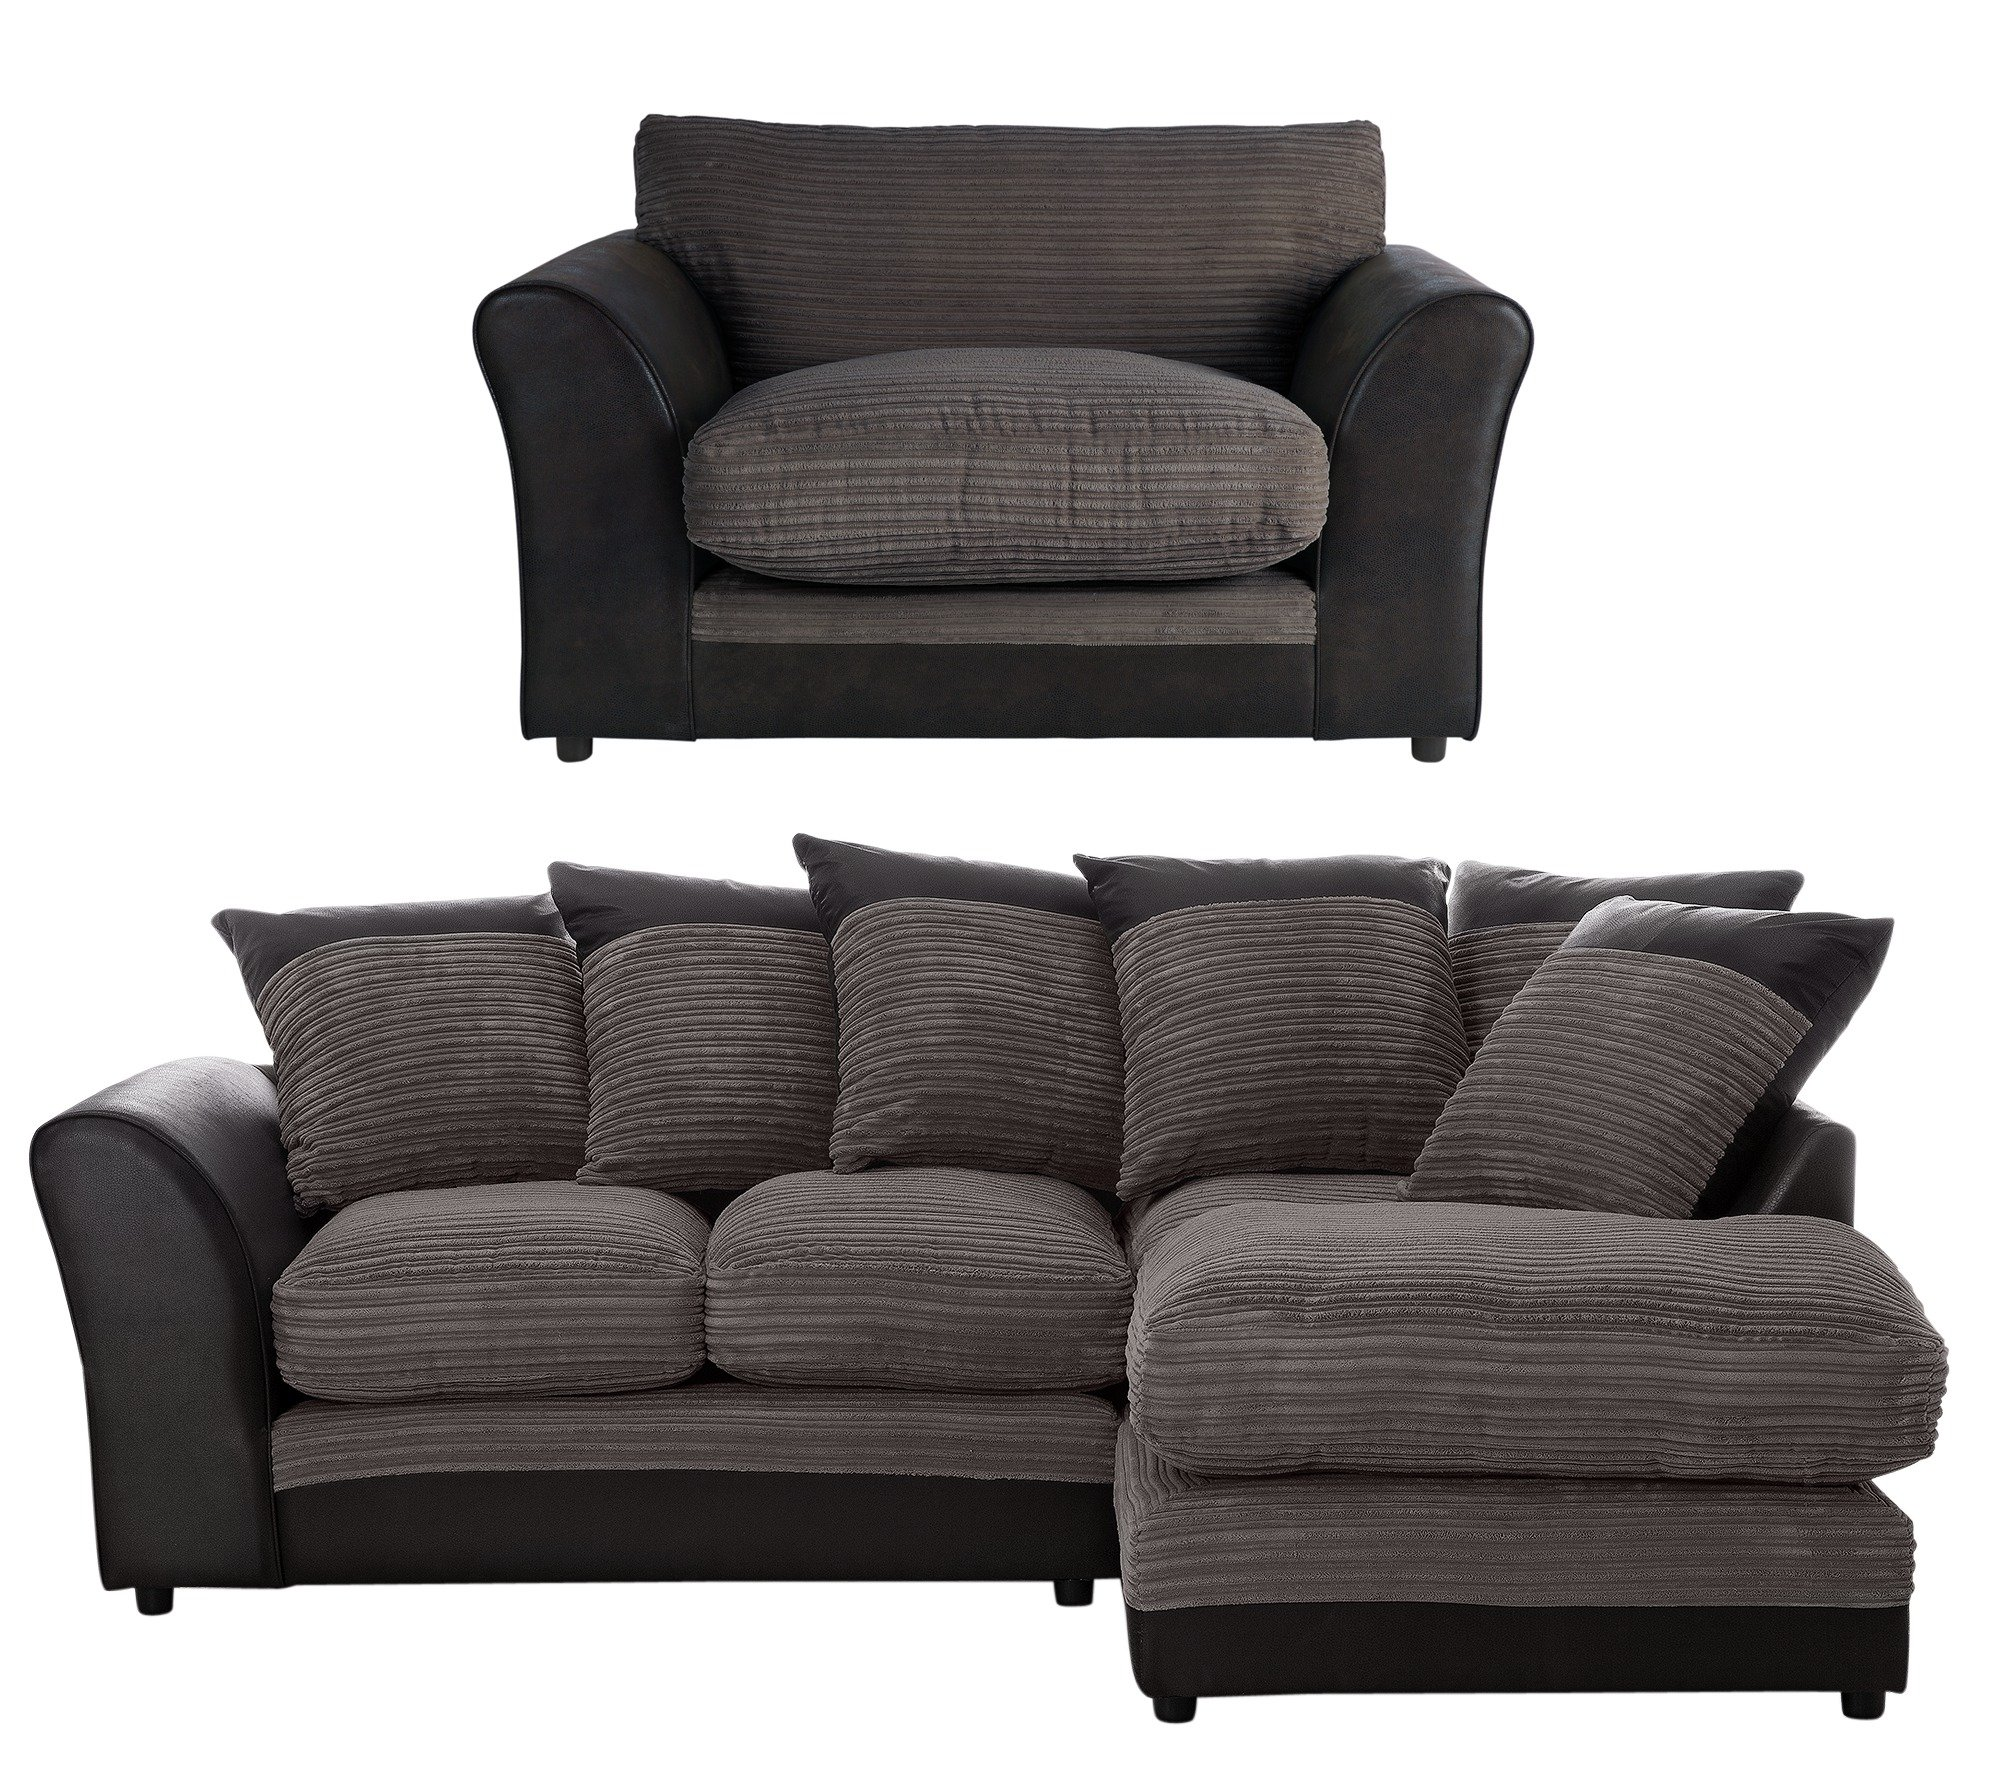 childrens sofa chair argos chairs for restaurant home harley reg right corner and cuddle